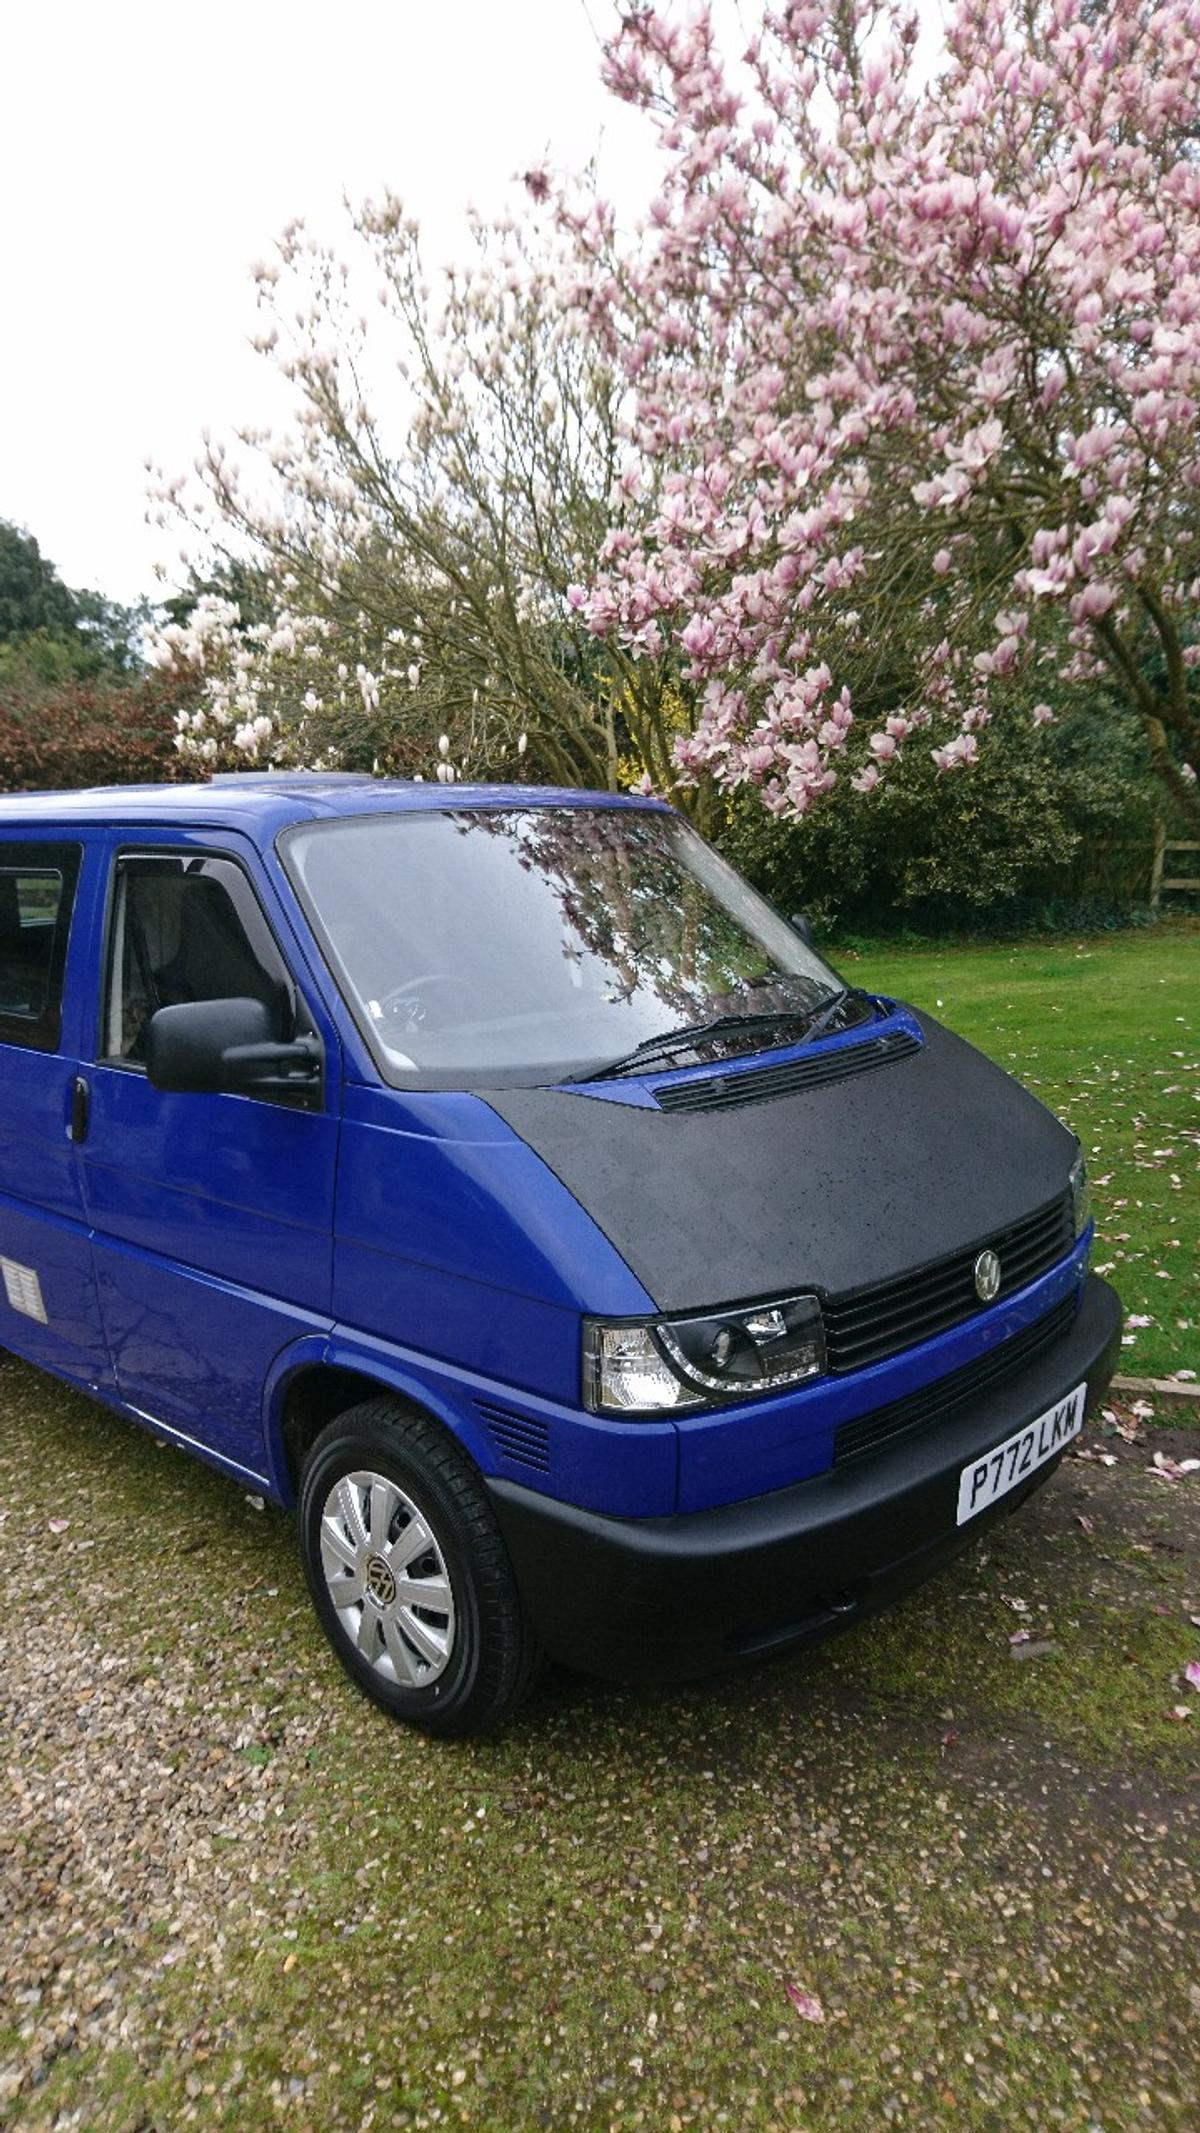 Vw T4 2 4d Syncro Transporter 4x4 In Sp7 Shaftesbury For 5 750 00 For Sale Shpock